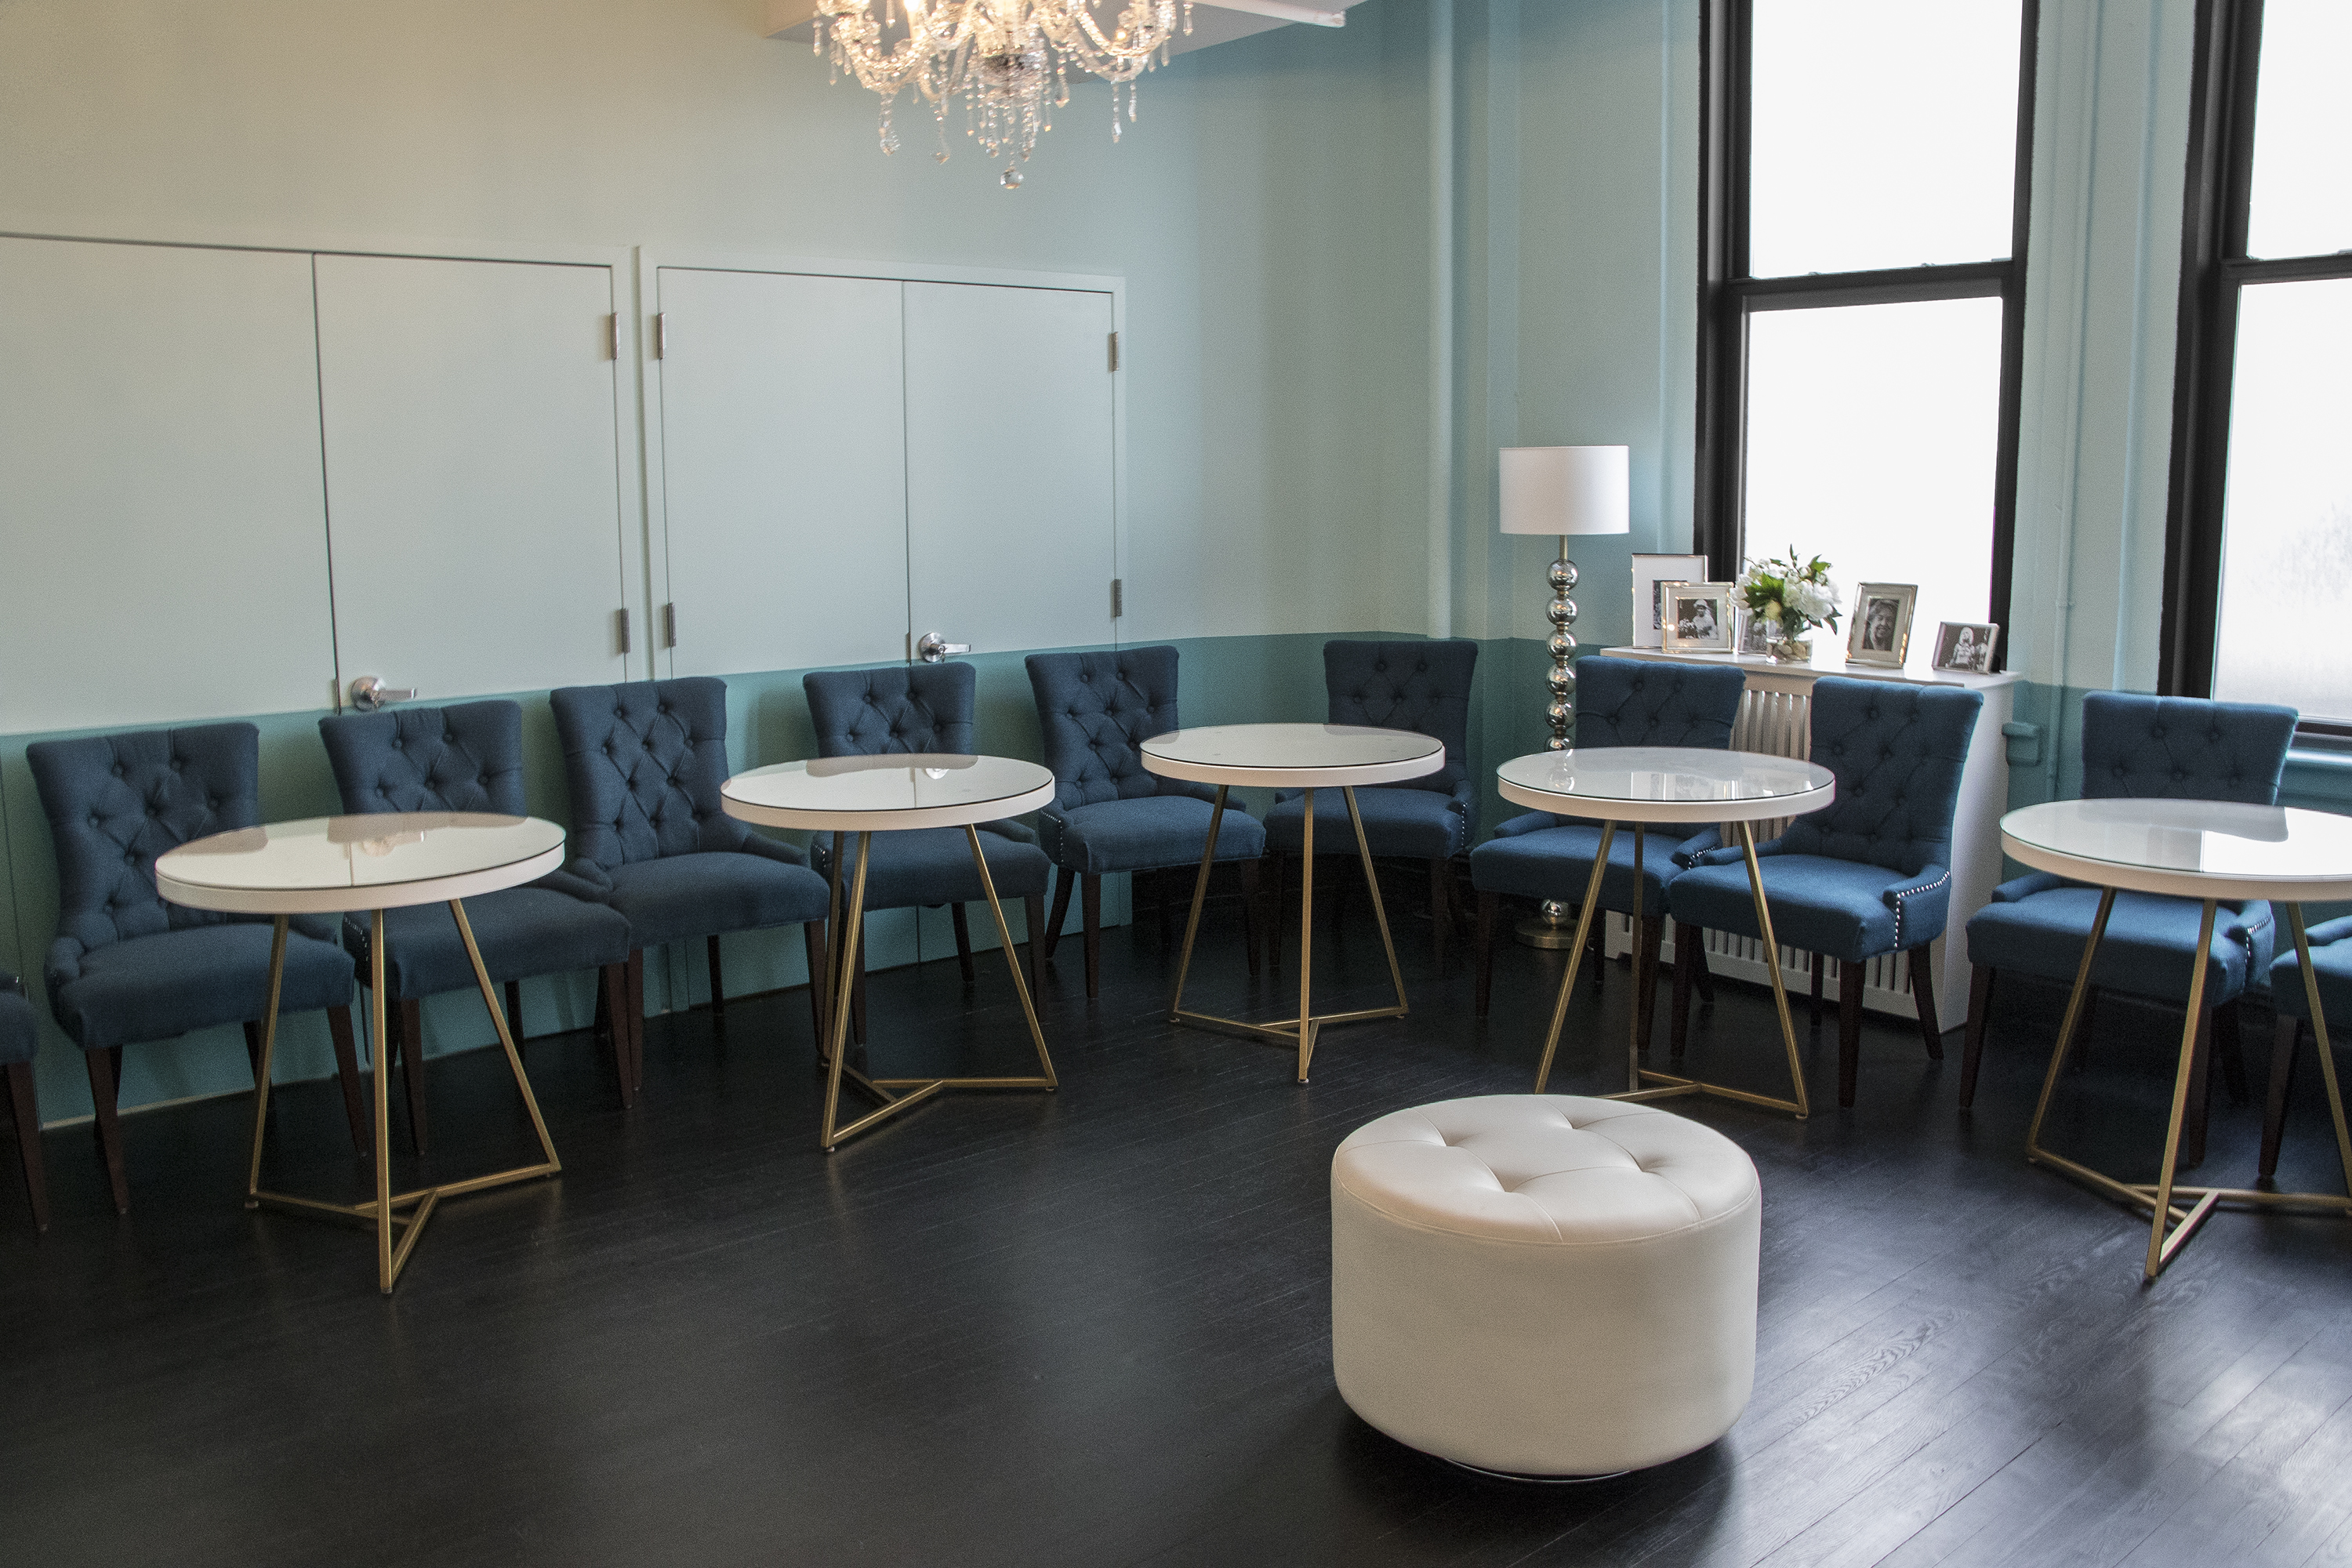 The V. Club: New Wellness Club for Women in NYC